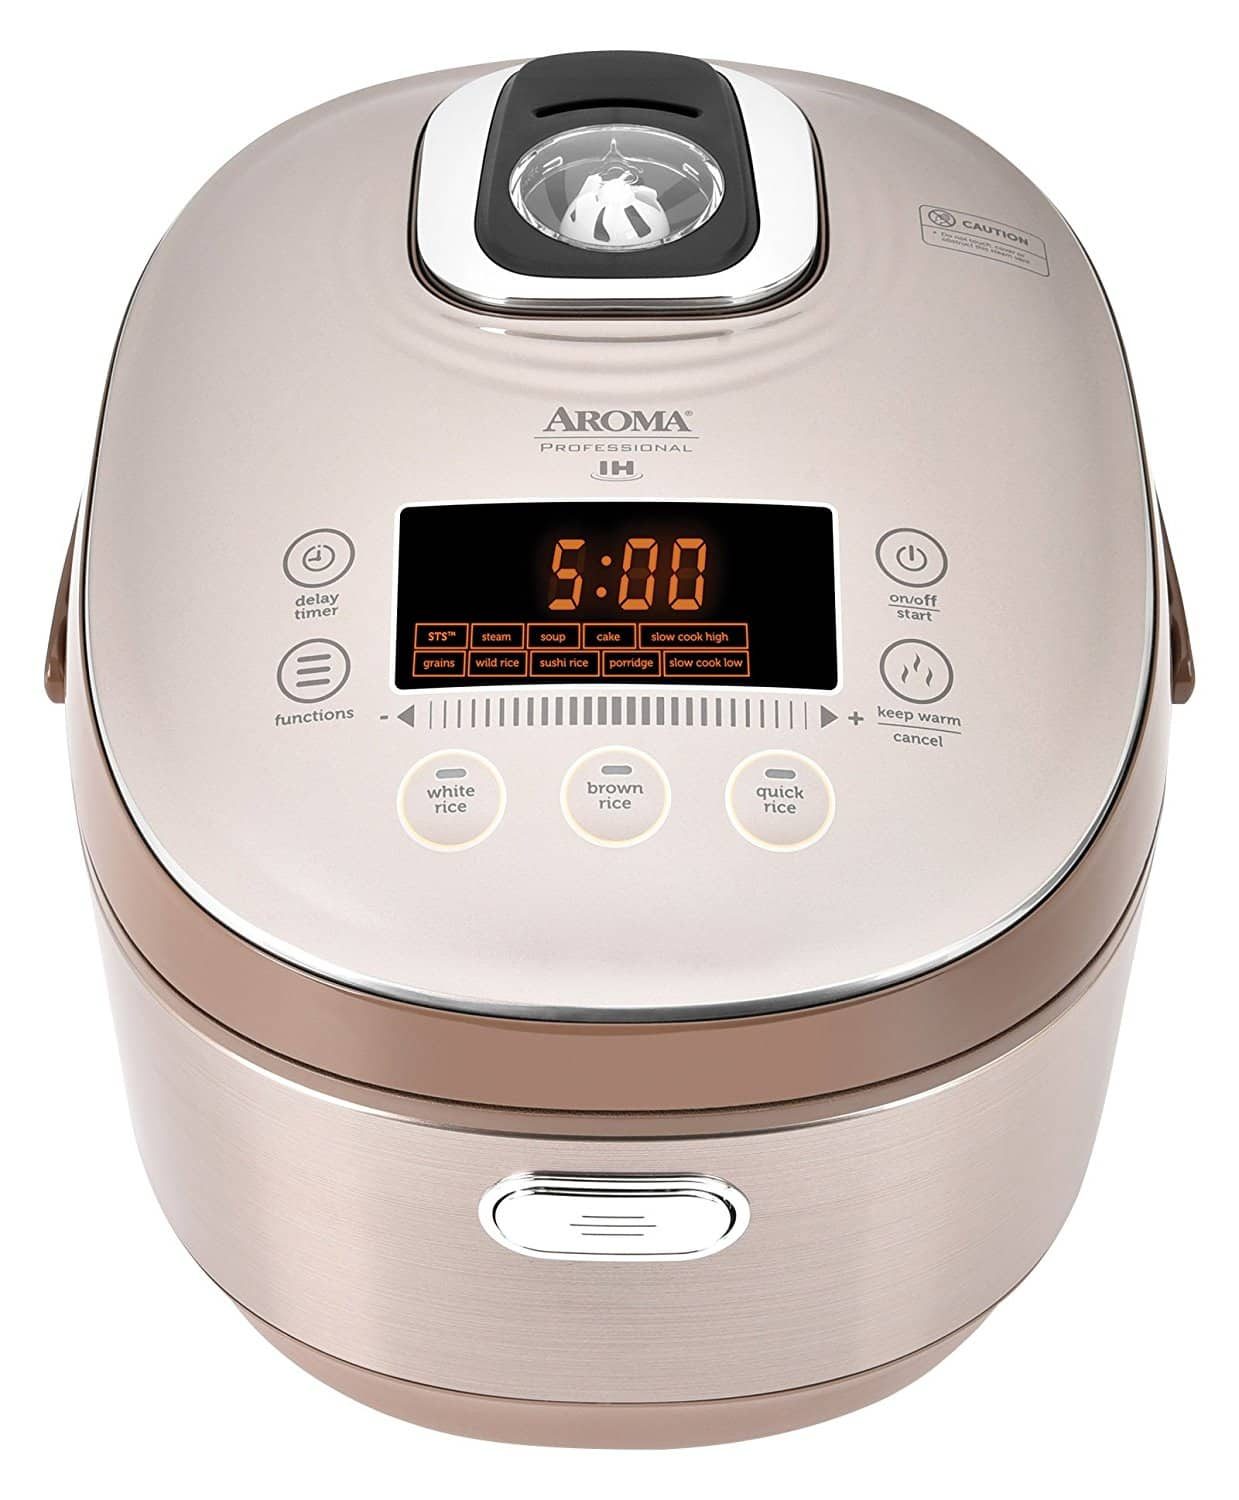 $100 off Aroma Housewares MTC-8010 Professional Induction Heating Rice Cooker/Multicooker, 20-Cup (Cooked) $200.34